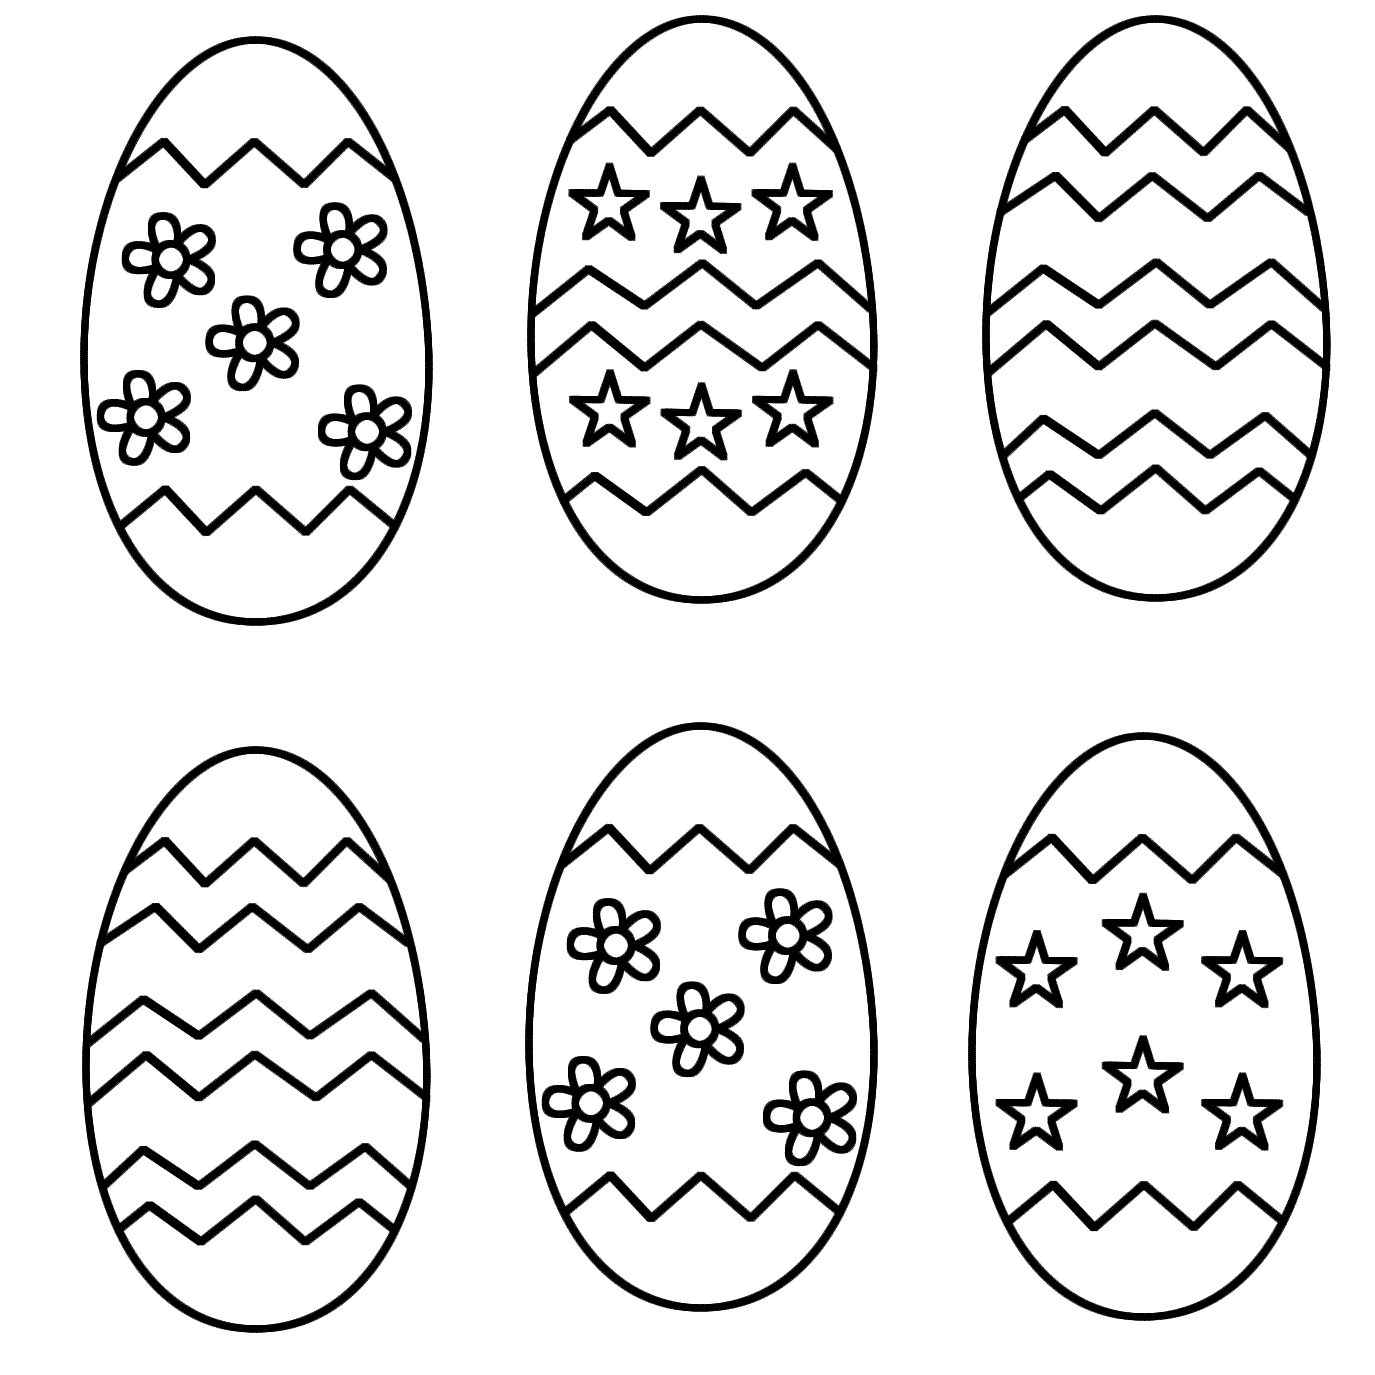 Easter Coloring Pages for Childrens Printable for Free Printable Of Easter Coloring Printable Easter Coloring Pages Coloring Gallery